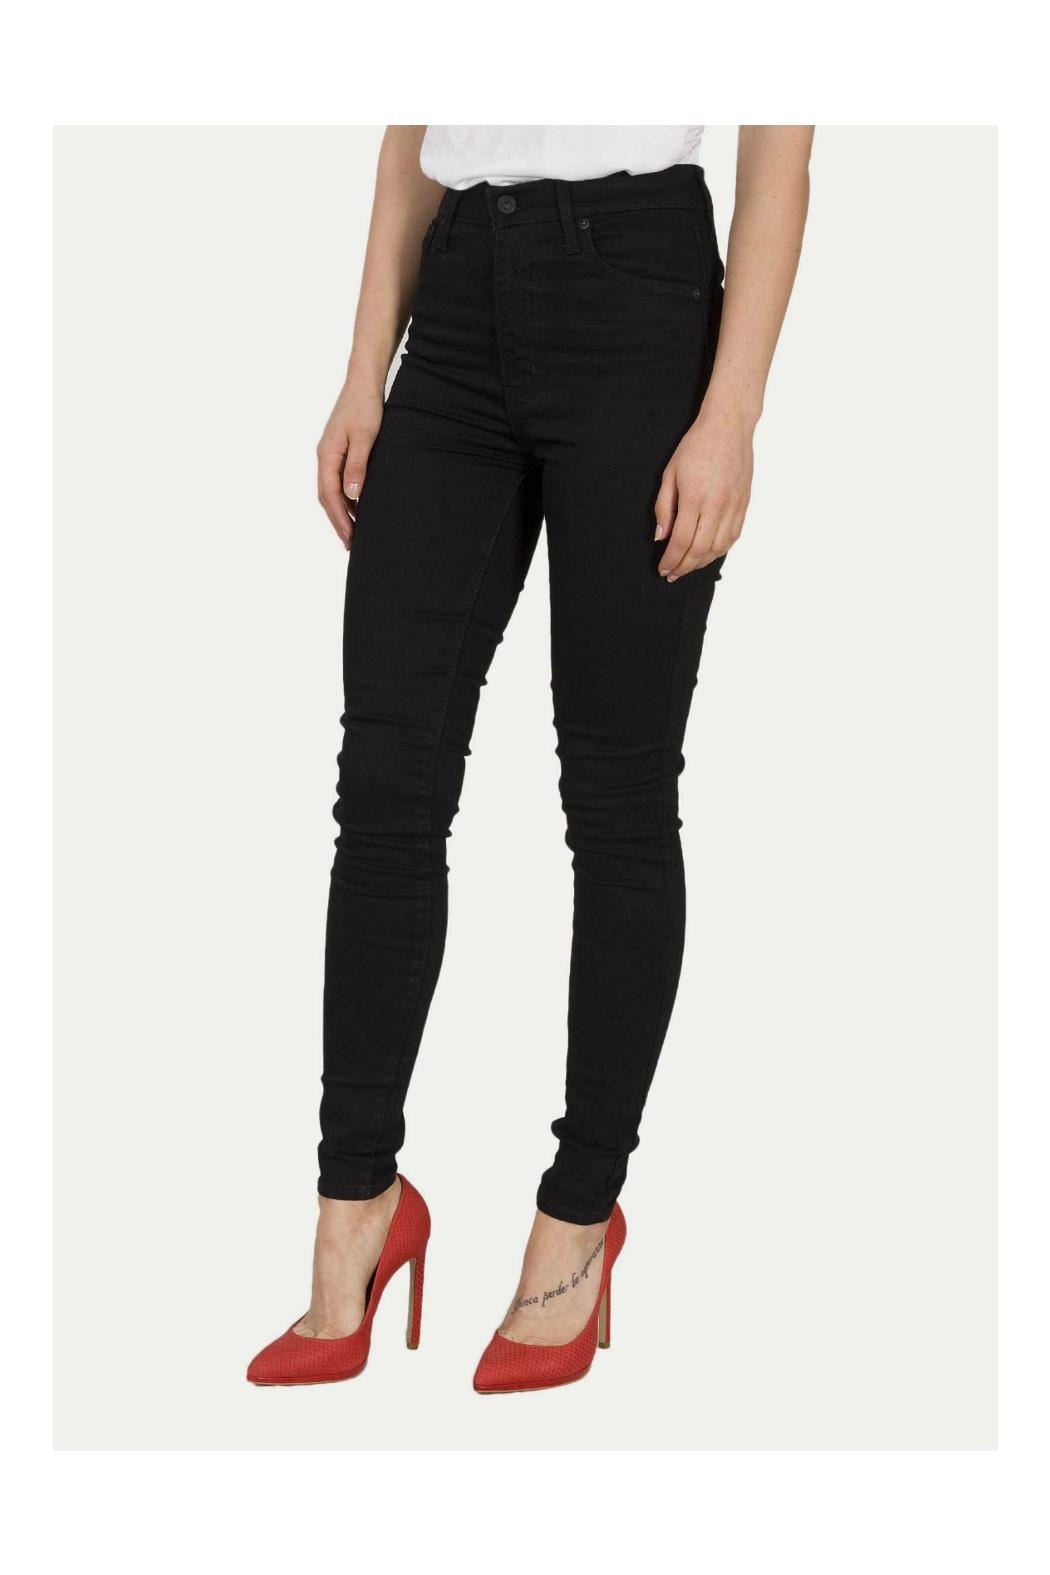 Levi's Mile High Skinny Jeans - Main Image